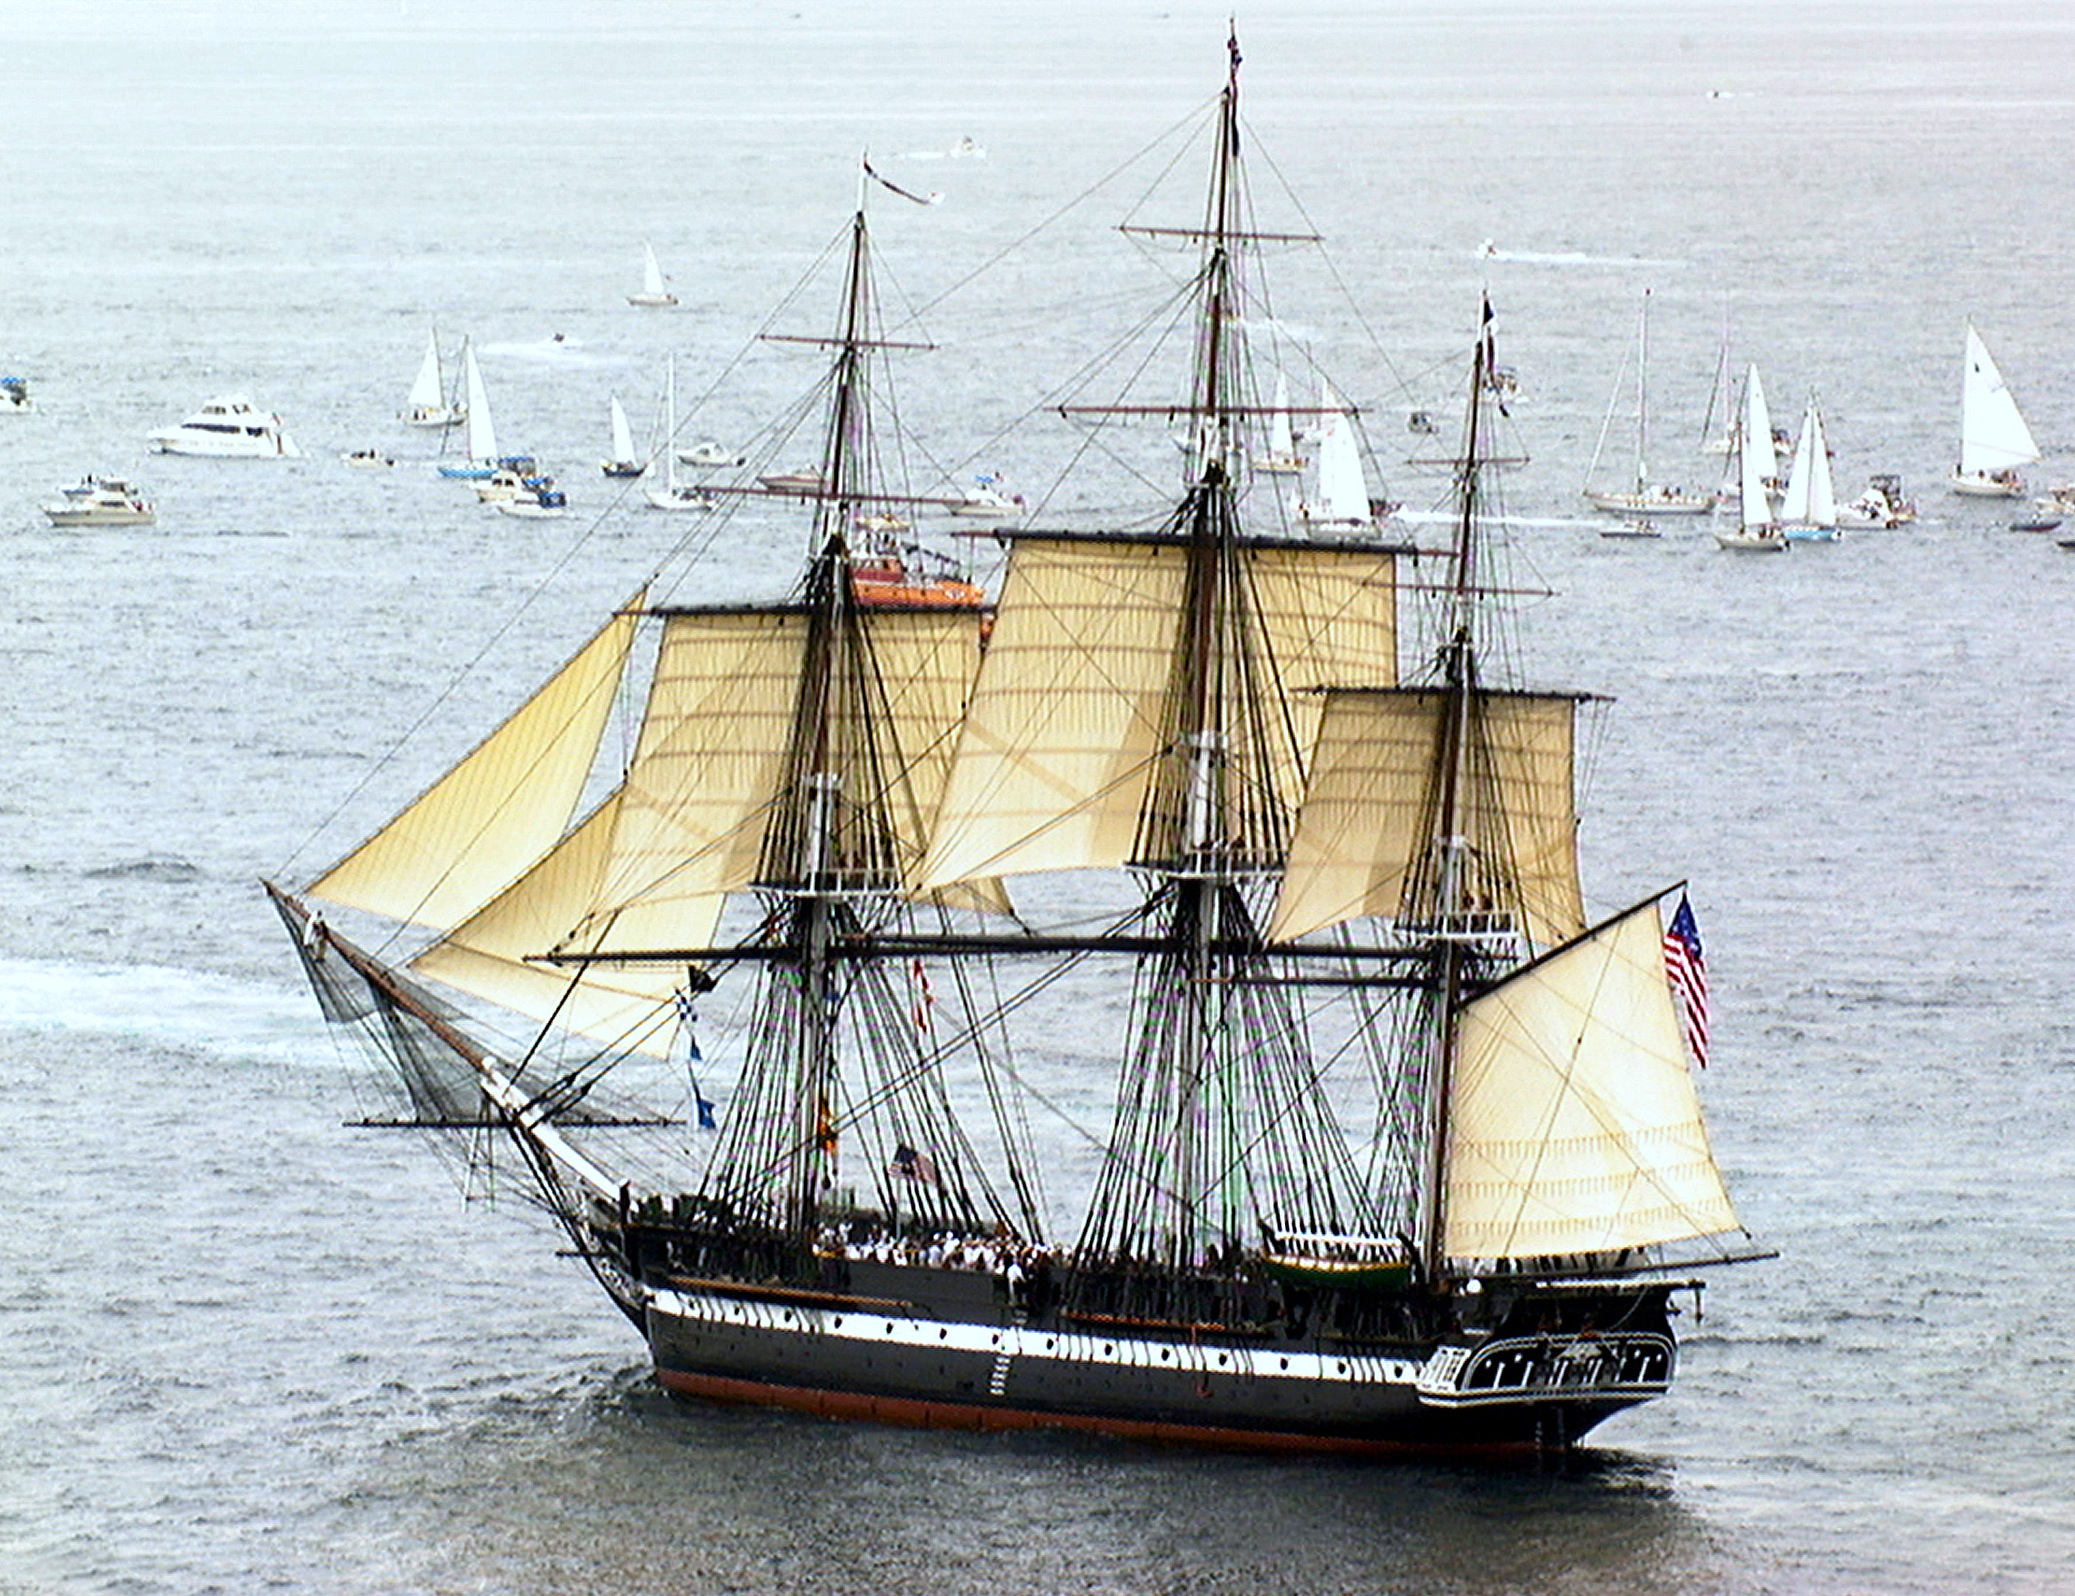 USS CONSTITUTION UNDERWAY FOR THE FIRST TIME IN 116 YEARS